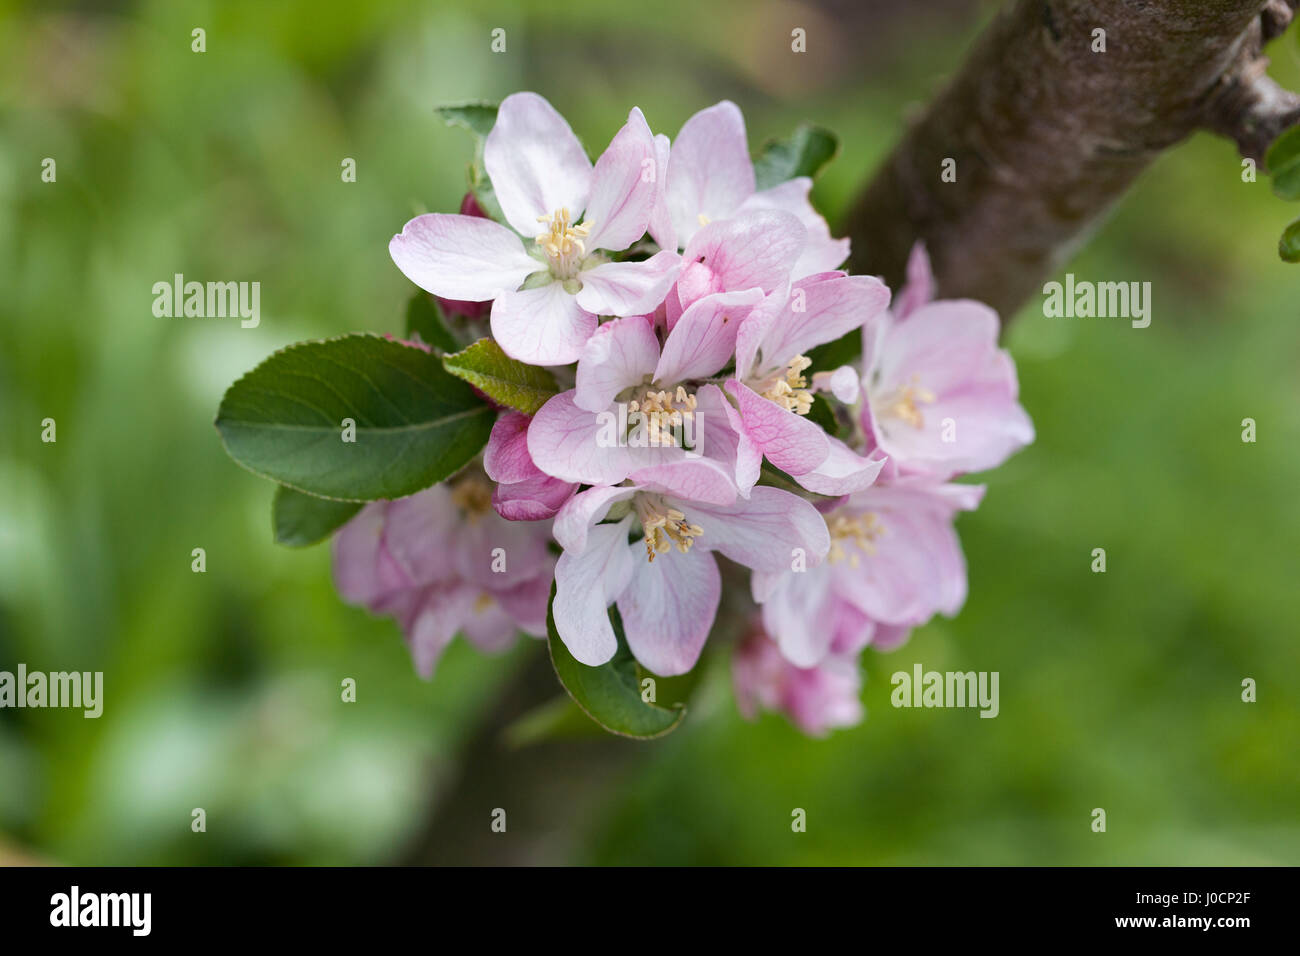 Close up of Malus domestica, Brownlees Russet apple tree blossom in spring, England - Stock Image